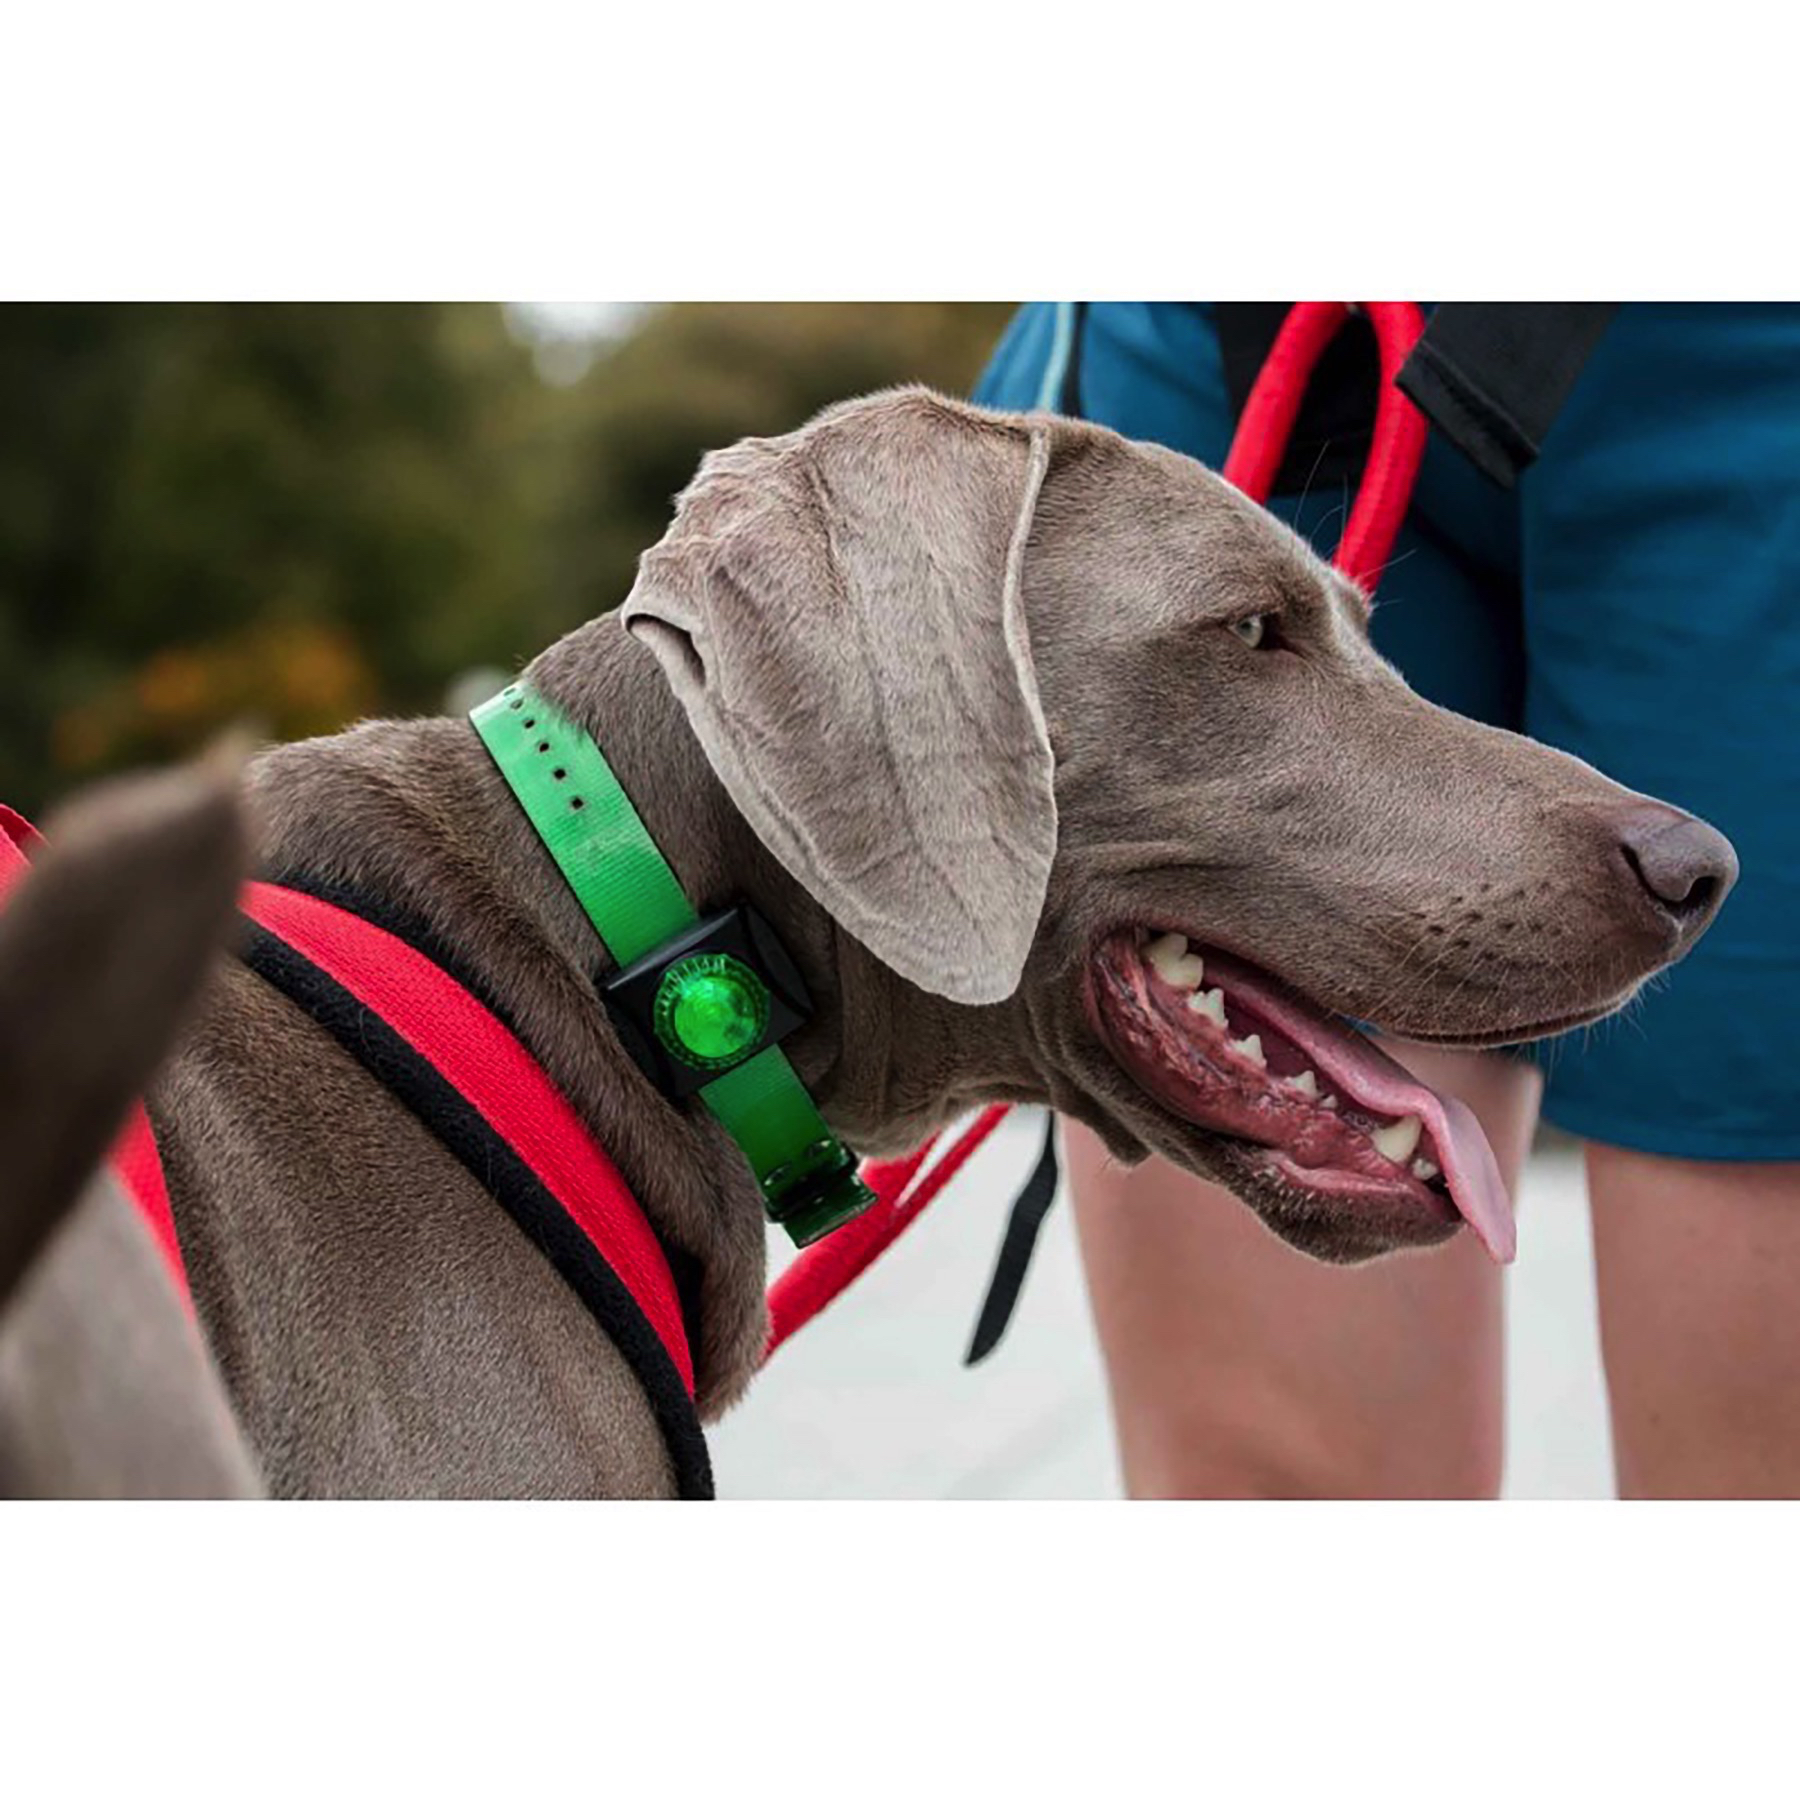 adventure lights guardian hunting dog series green led safety collar 2 pack 627569000830 ebay